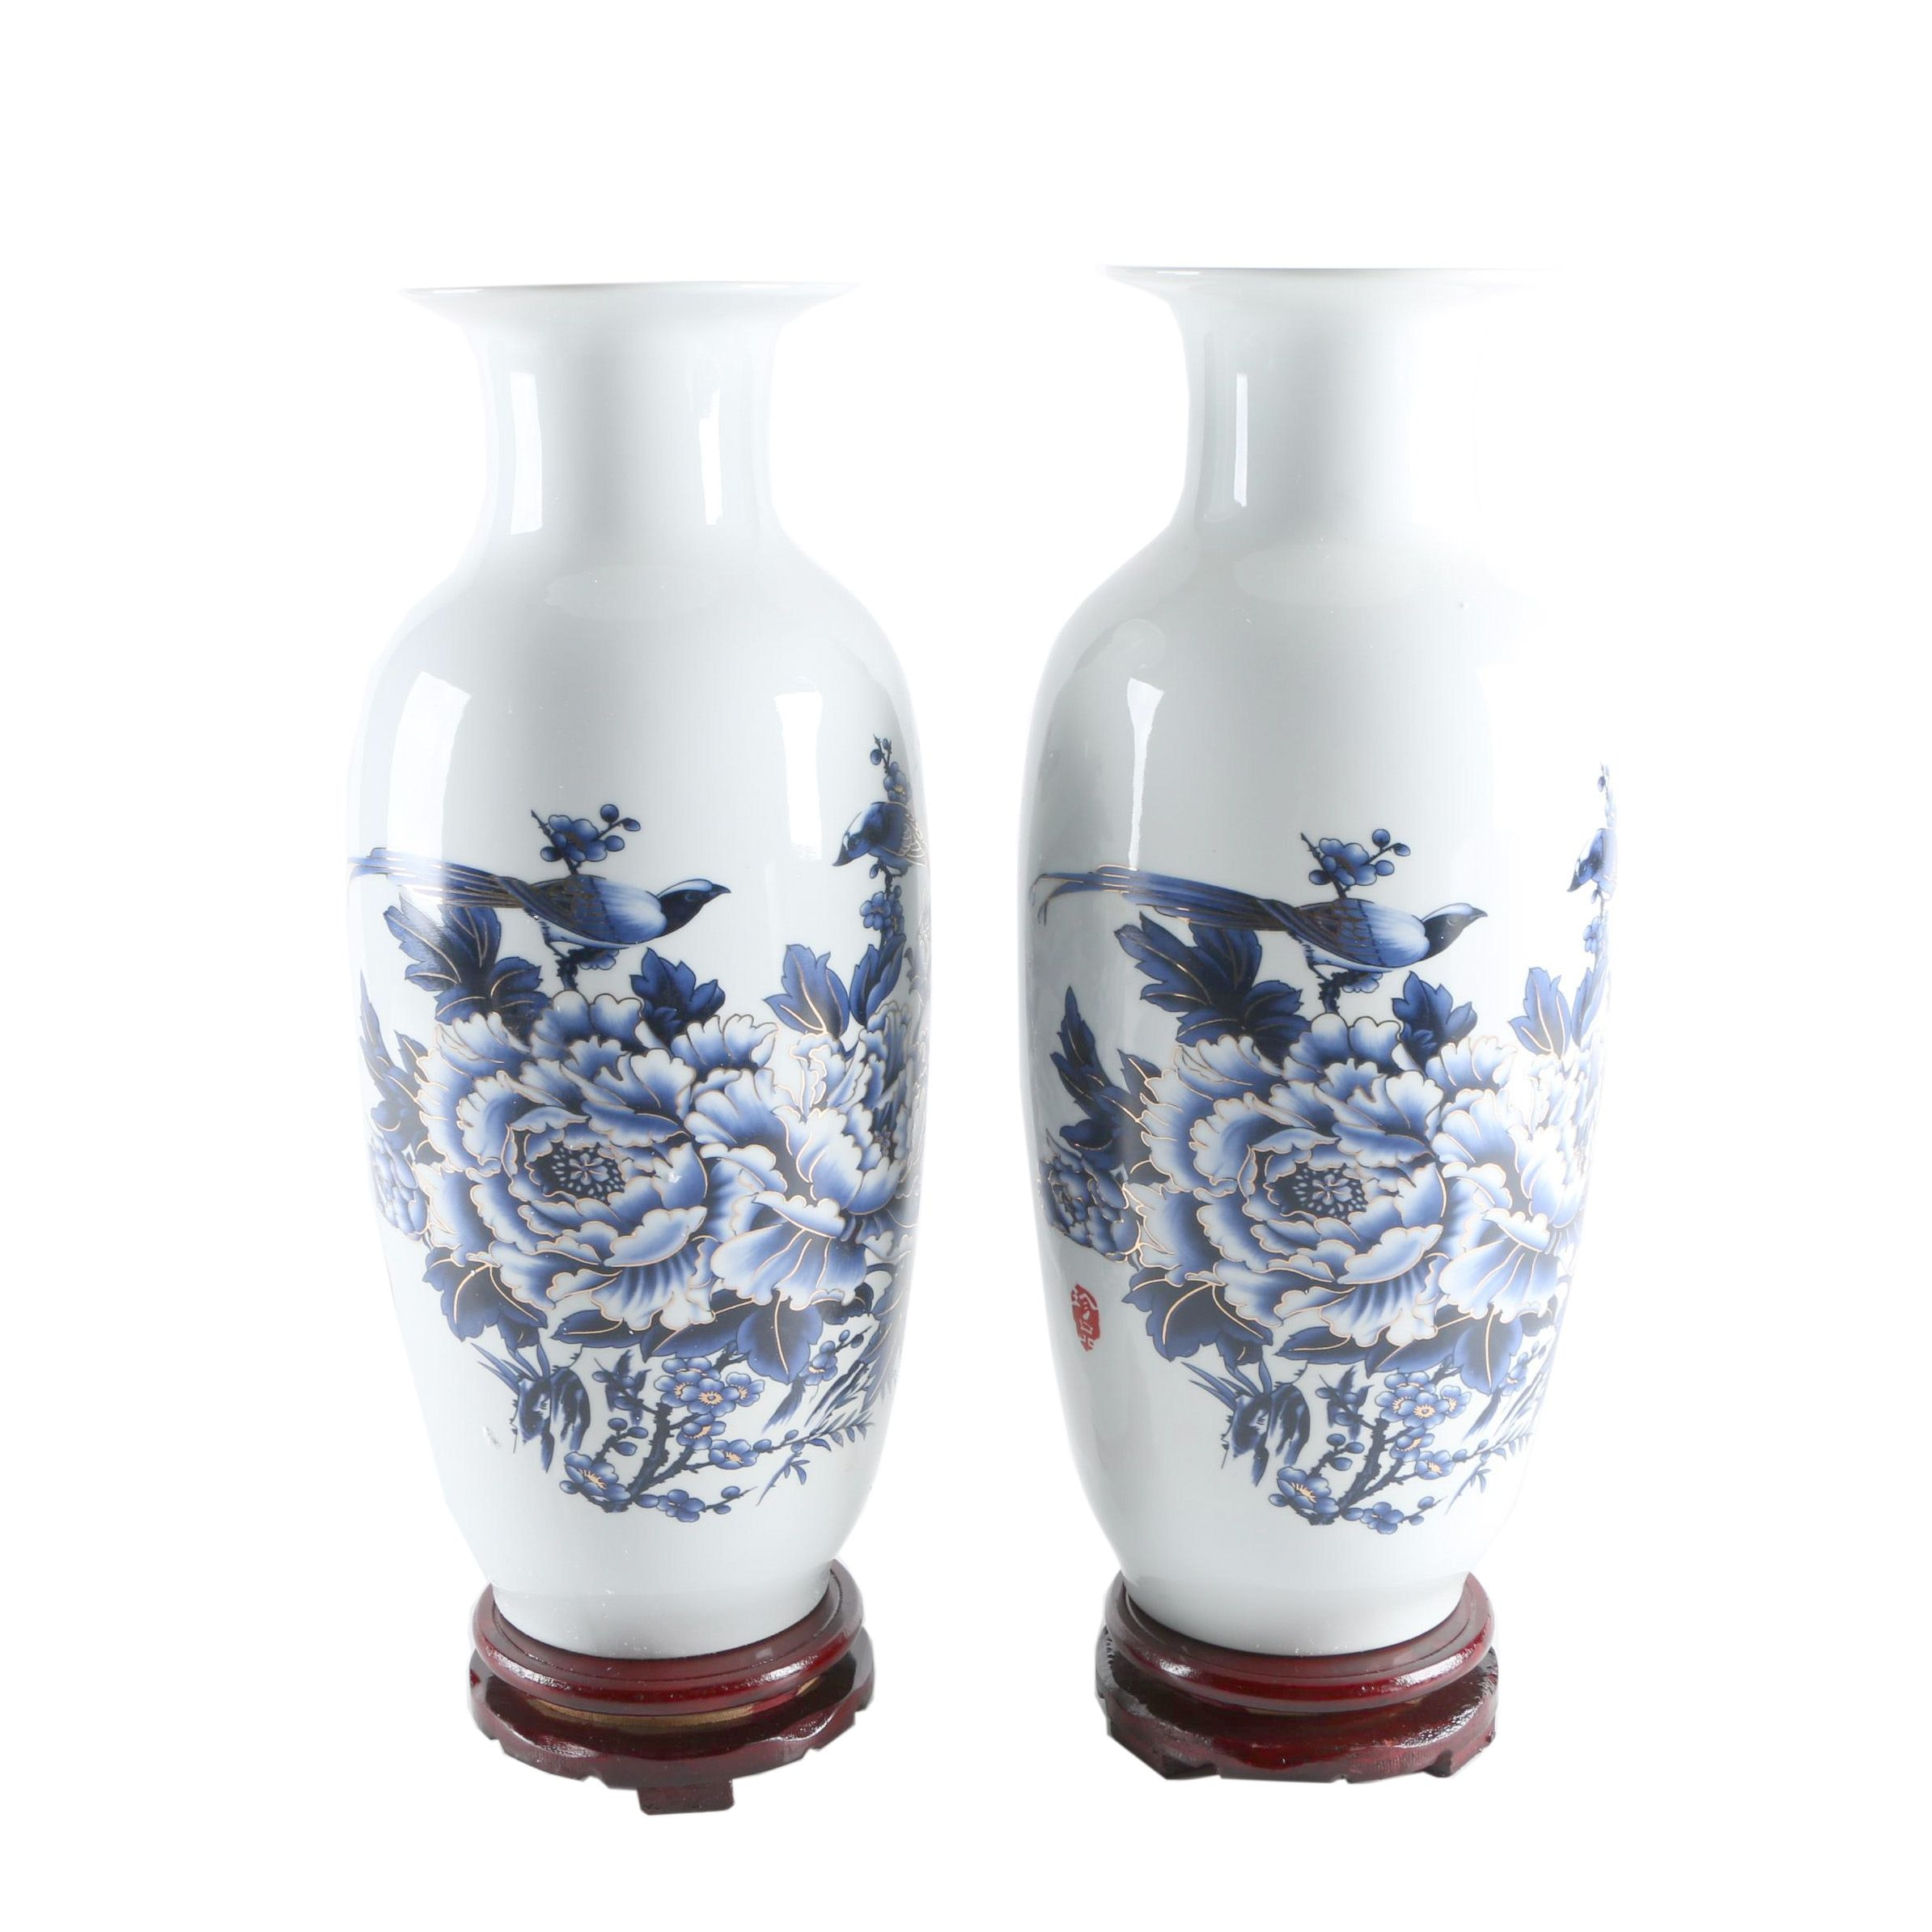 Pair of Blue and Whtie Chinese Exportware Vases